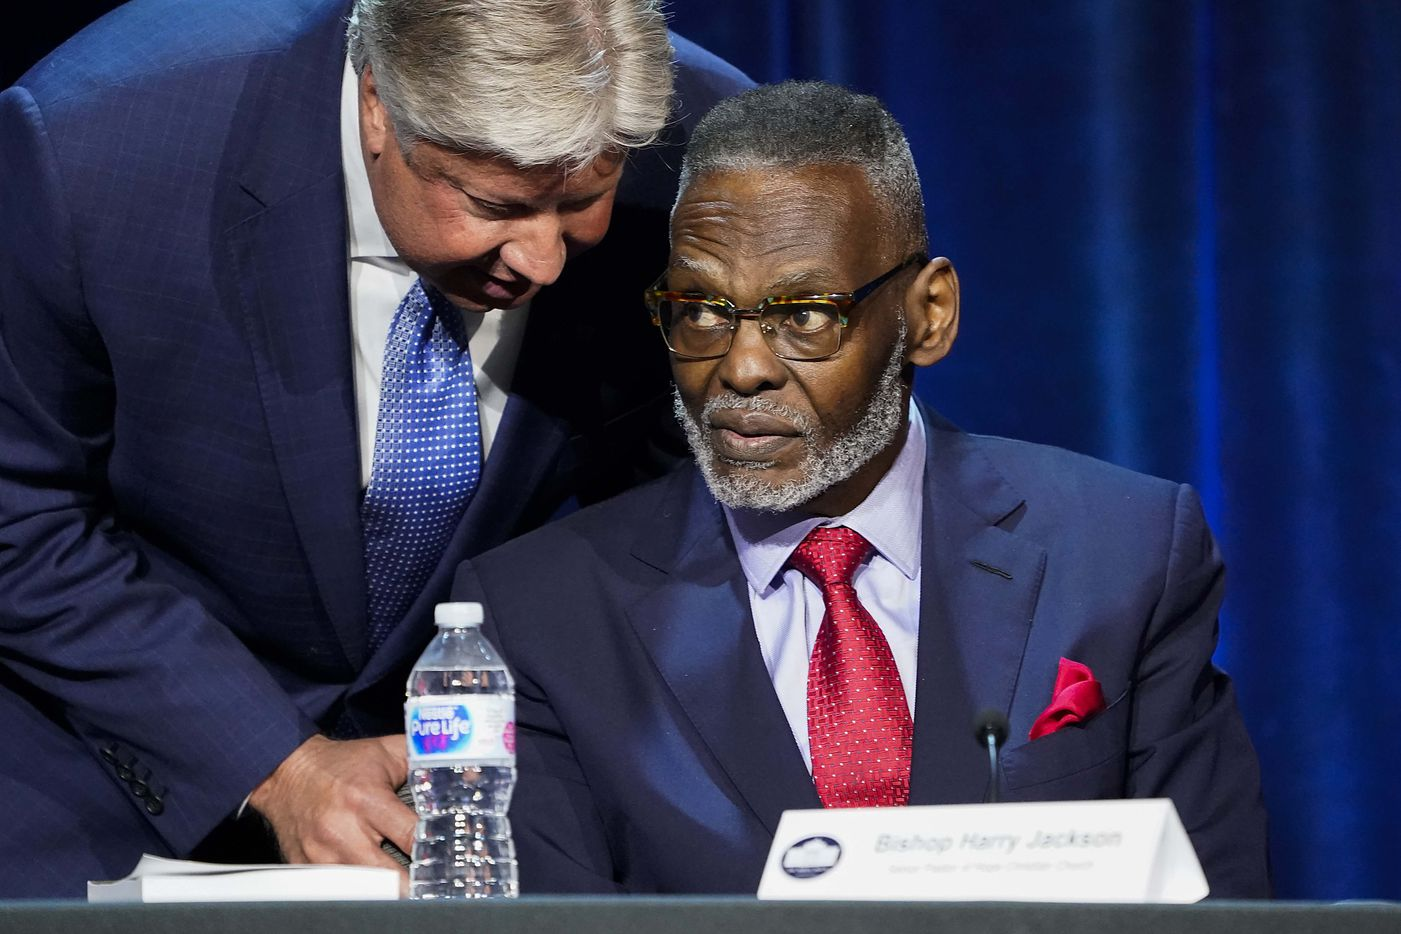 Gateway Church senior pastor Robert Morris (left) talks with Bishop Harry Jackson, senior pastor of Hope Christian Church, during in a roundtable conversation about race relations and policing at Gateway Church Dallas Campus on Thursday, June 11, 2020, in Dallas. (Smiley N. Pool/The Dallas Morning News)